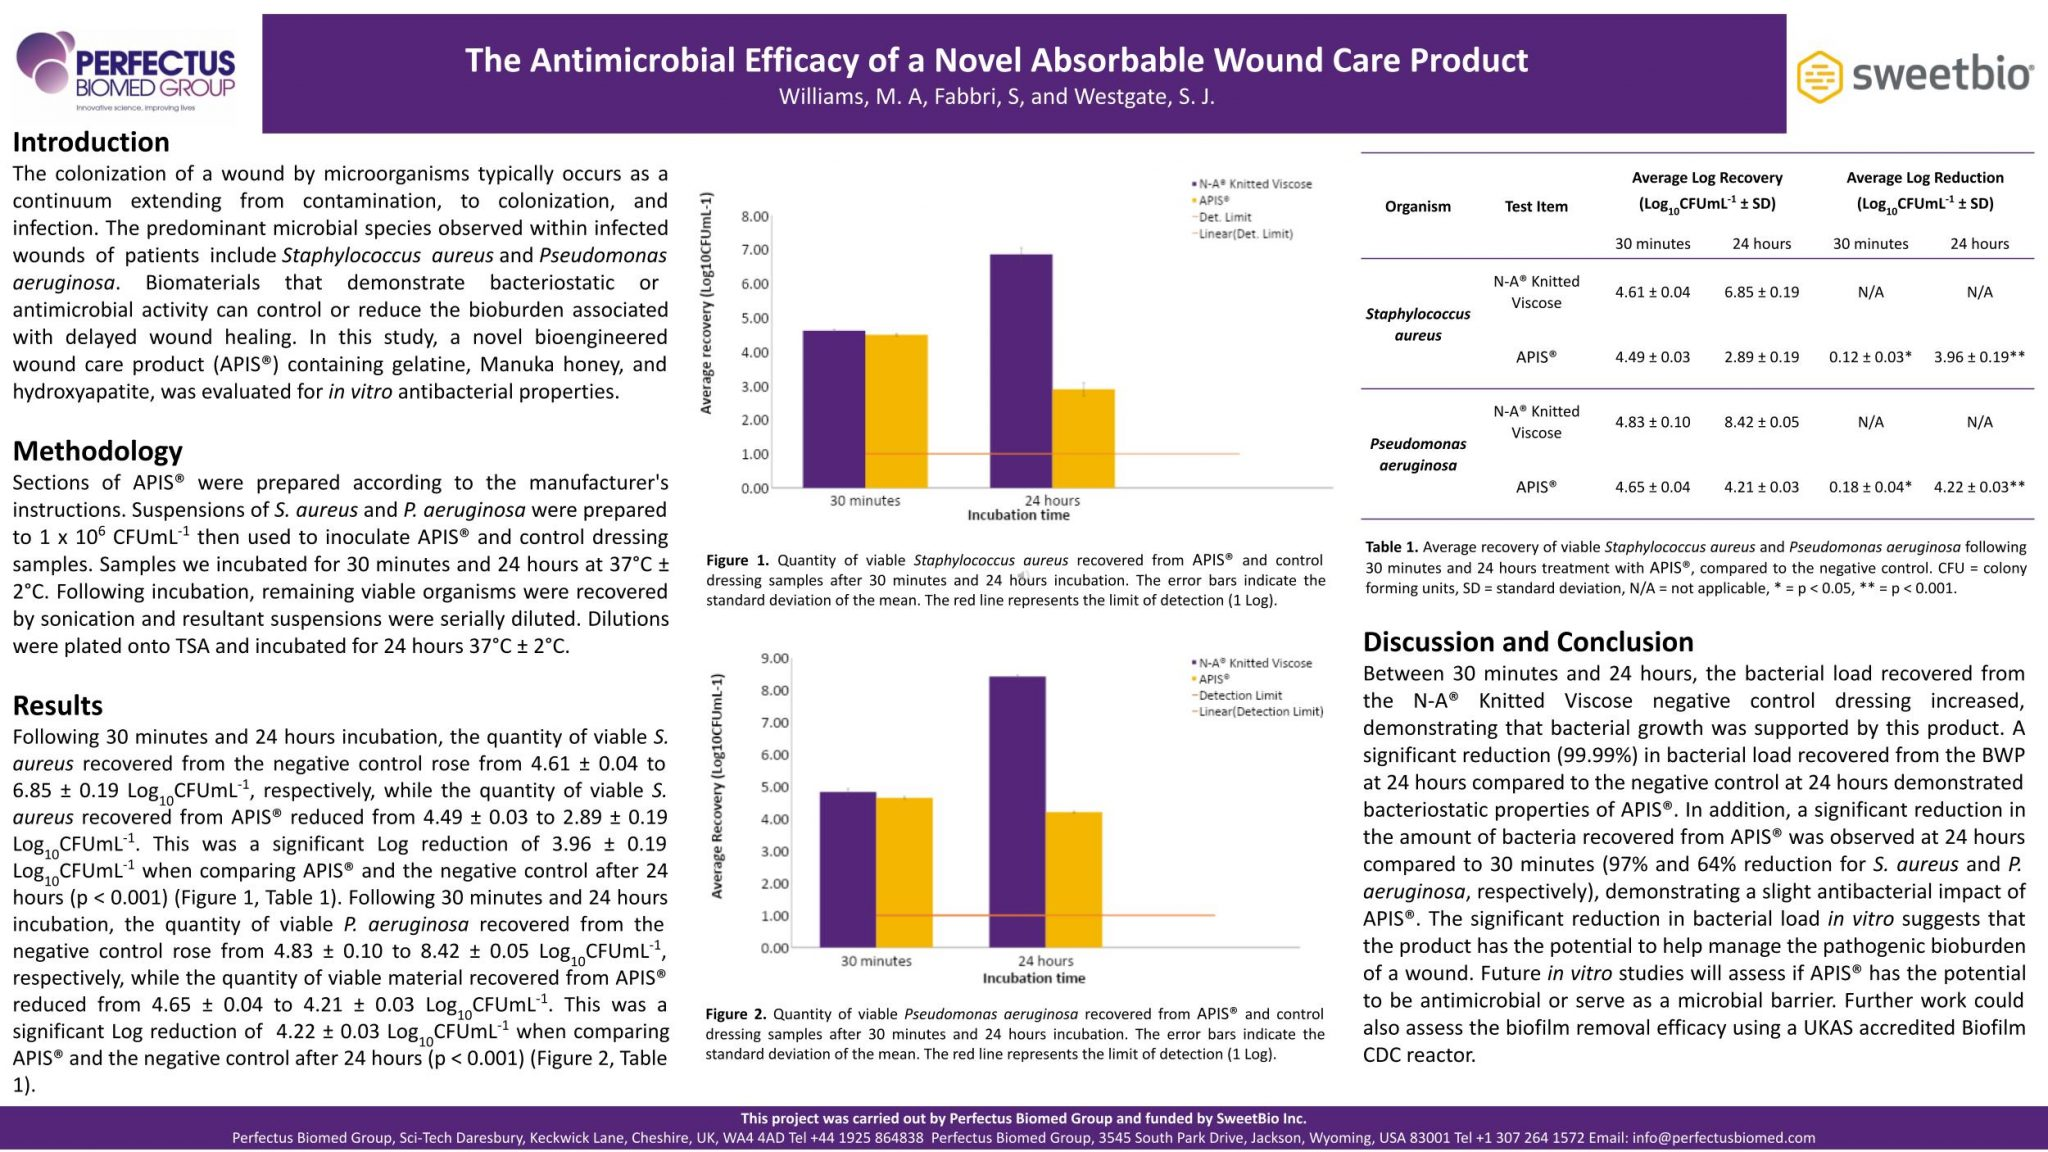 The Antimicrobial Efficacy of a Novel Absorbable Wound Care Product